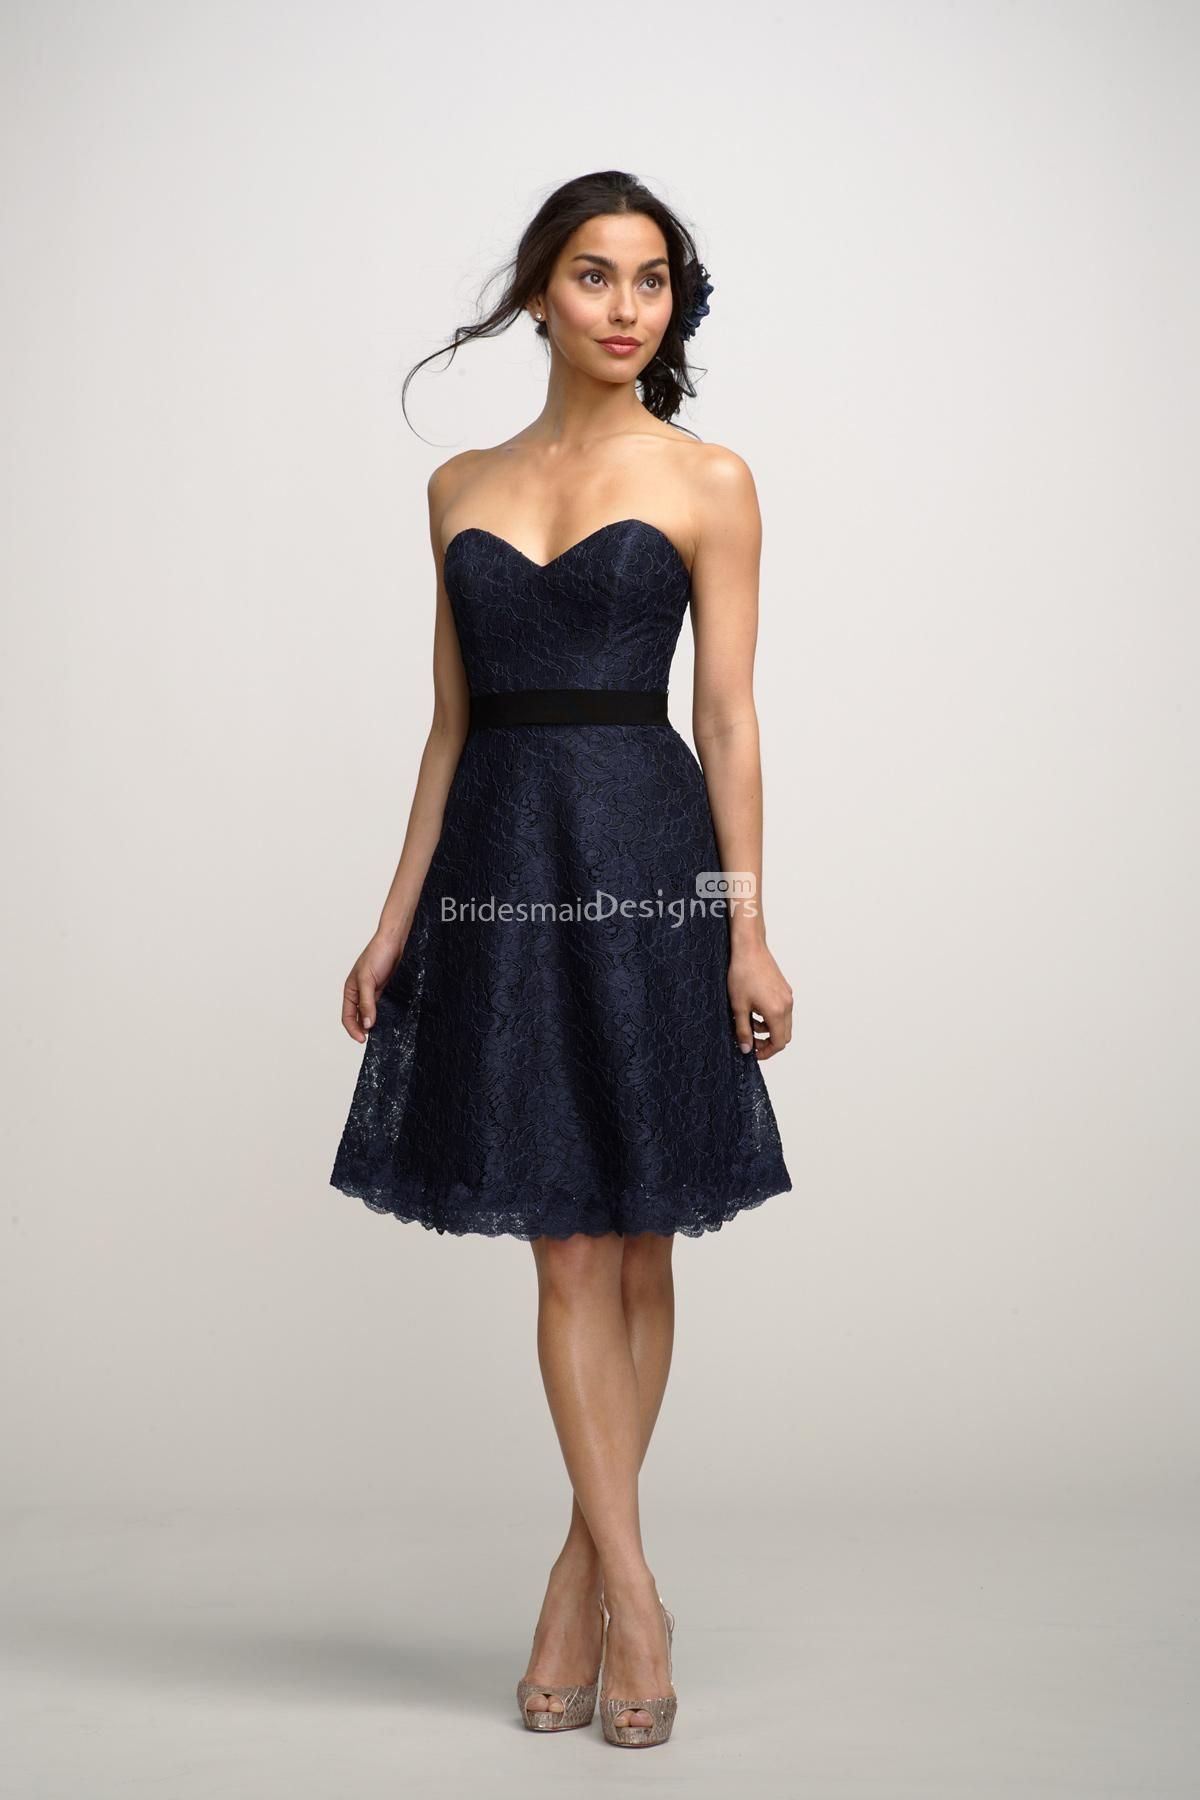 Navy blue a line sweetheart knee length bridesmaid dress with lace navy blue a line sweetheart knee length bridesmaid dress with lace covered guess which wedding ombrellifo Image collections